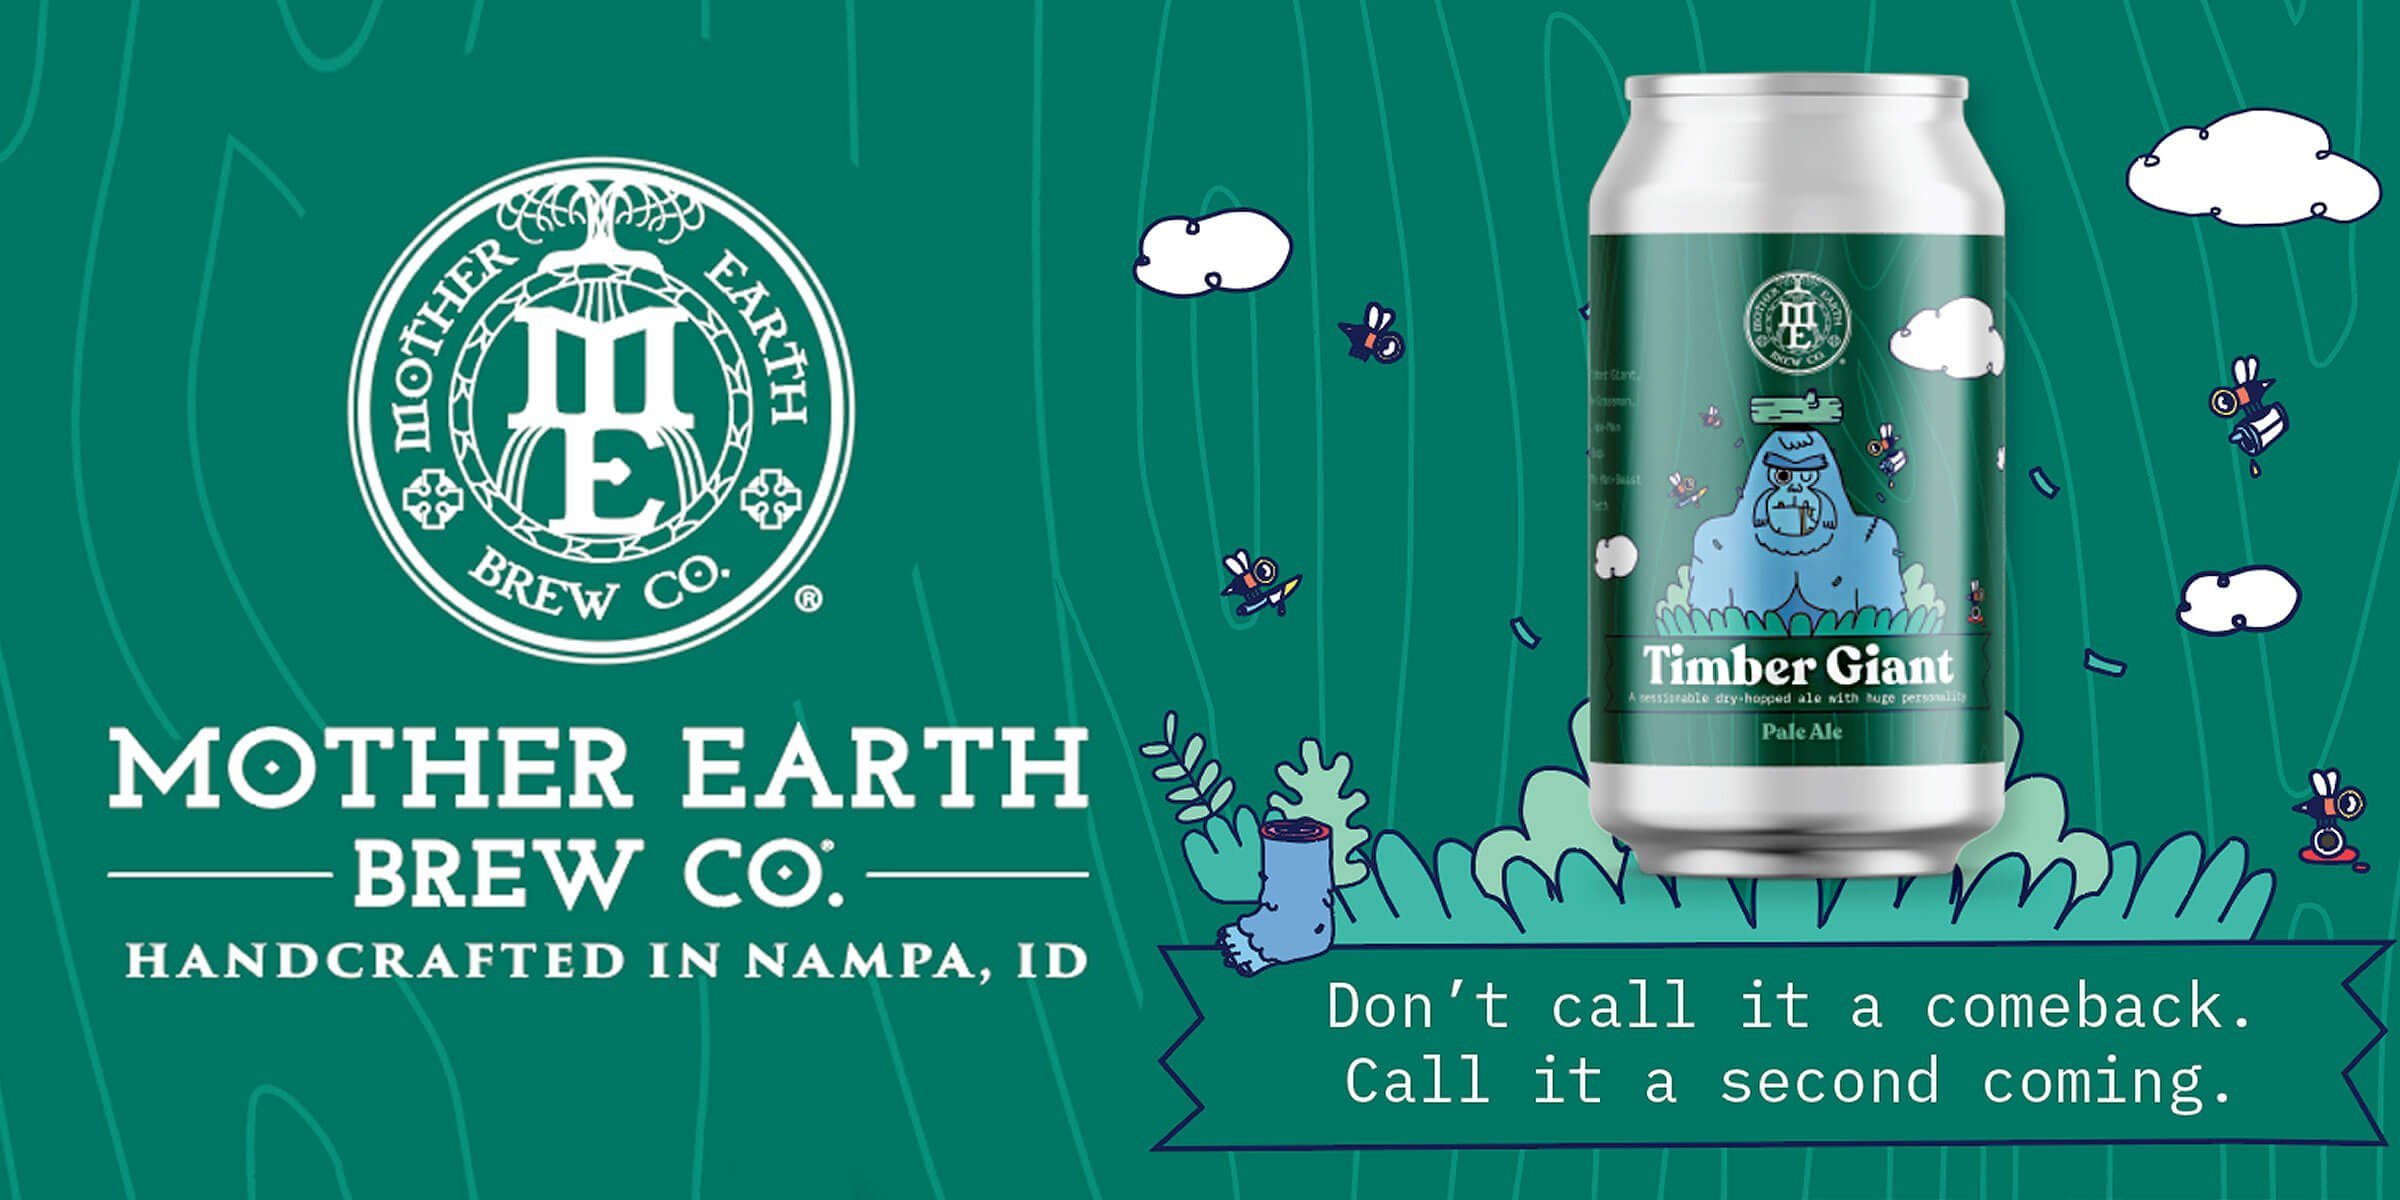 Mother Earth Brew Co. announced the highly anticipated return of Timber Giant Pale, brewed just in time for 'Treefort' — Idaho's largest music fest.